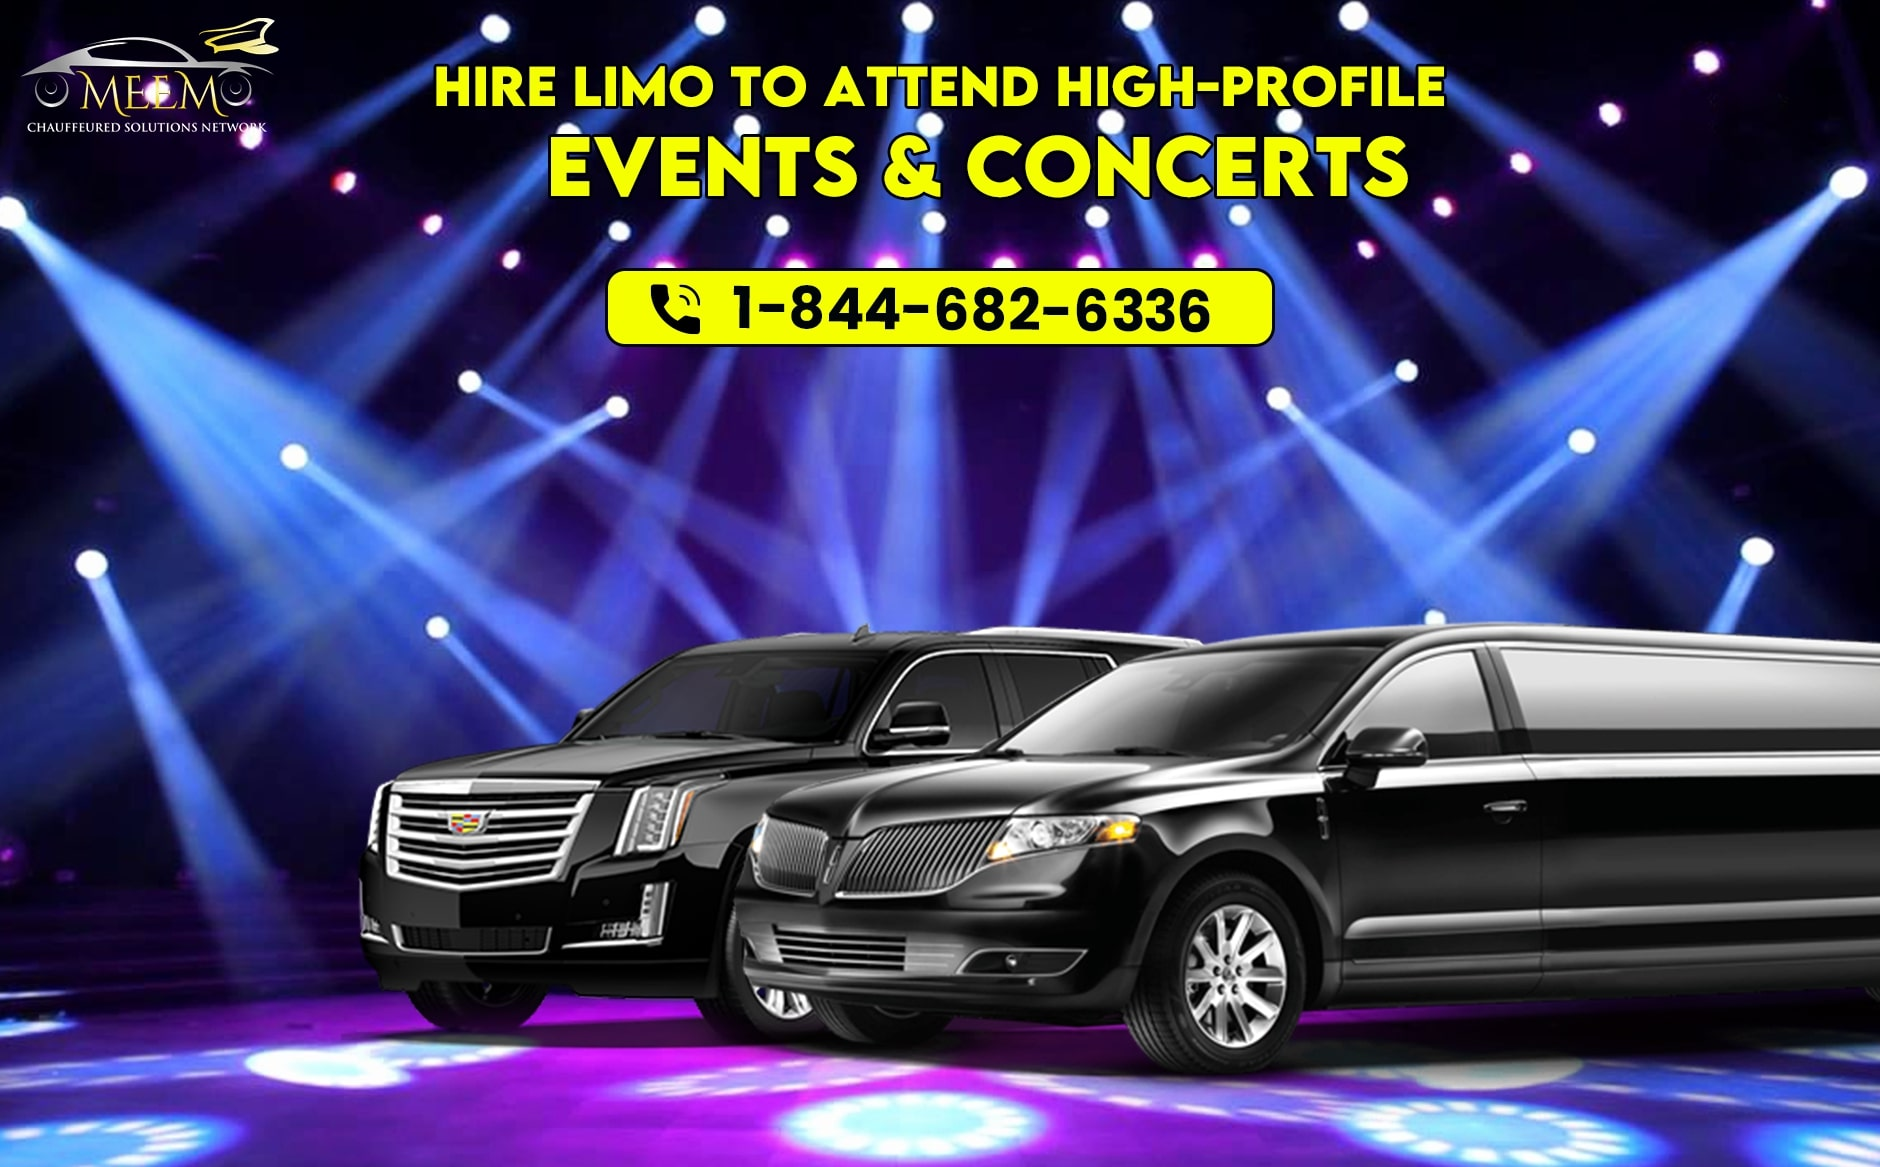 Hire Limo in NYC To Attend High-Profile Events